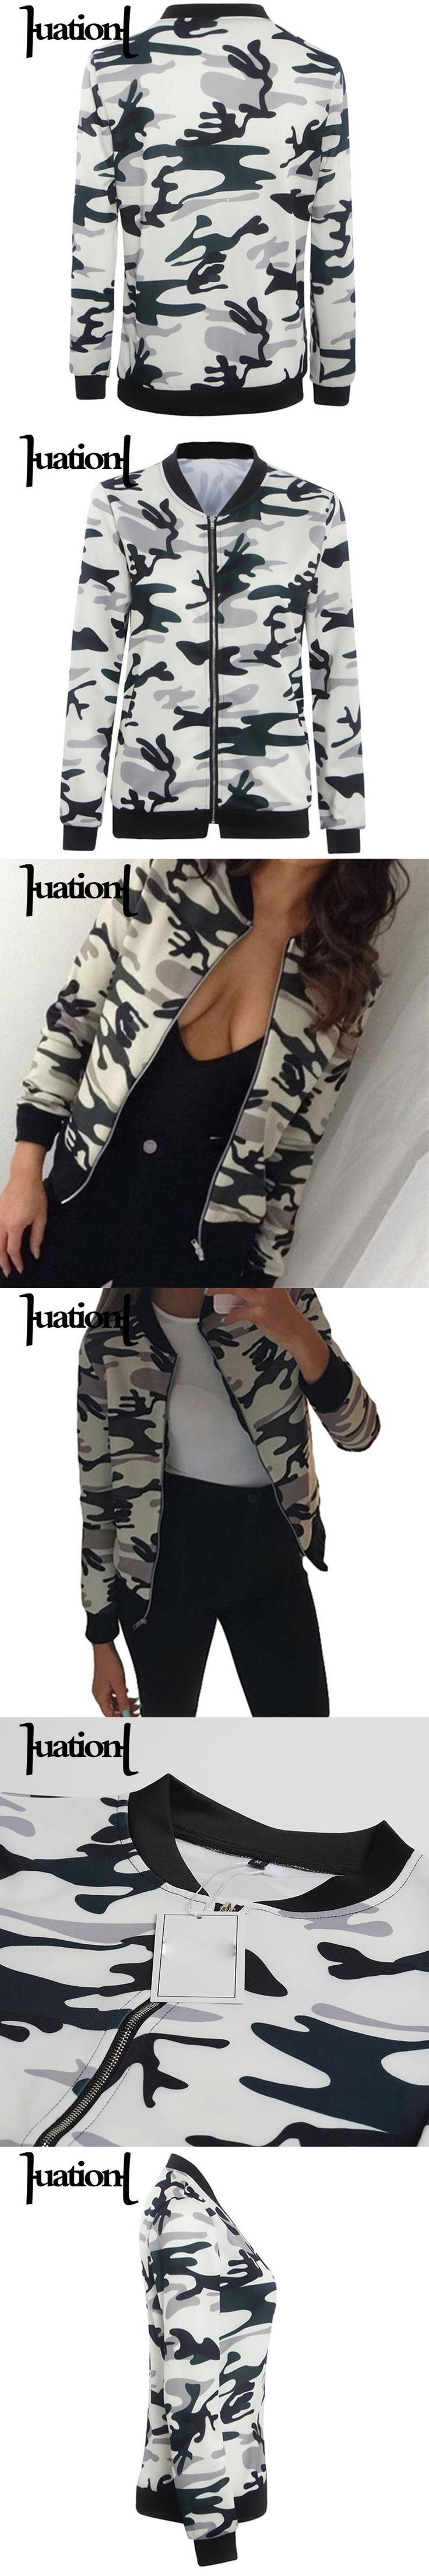 Huation Autumn Camouflage Print Women Jackets New Femme Stand Collar Baseball Jackets Long Sleeve Stand Bomber Jacket Coats